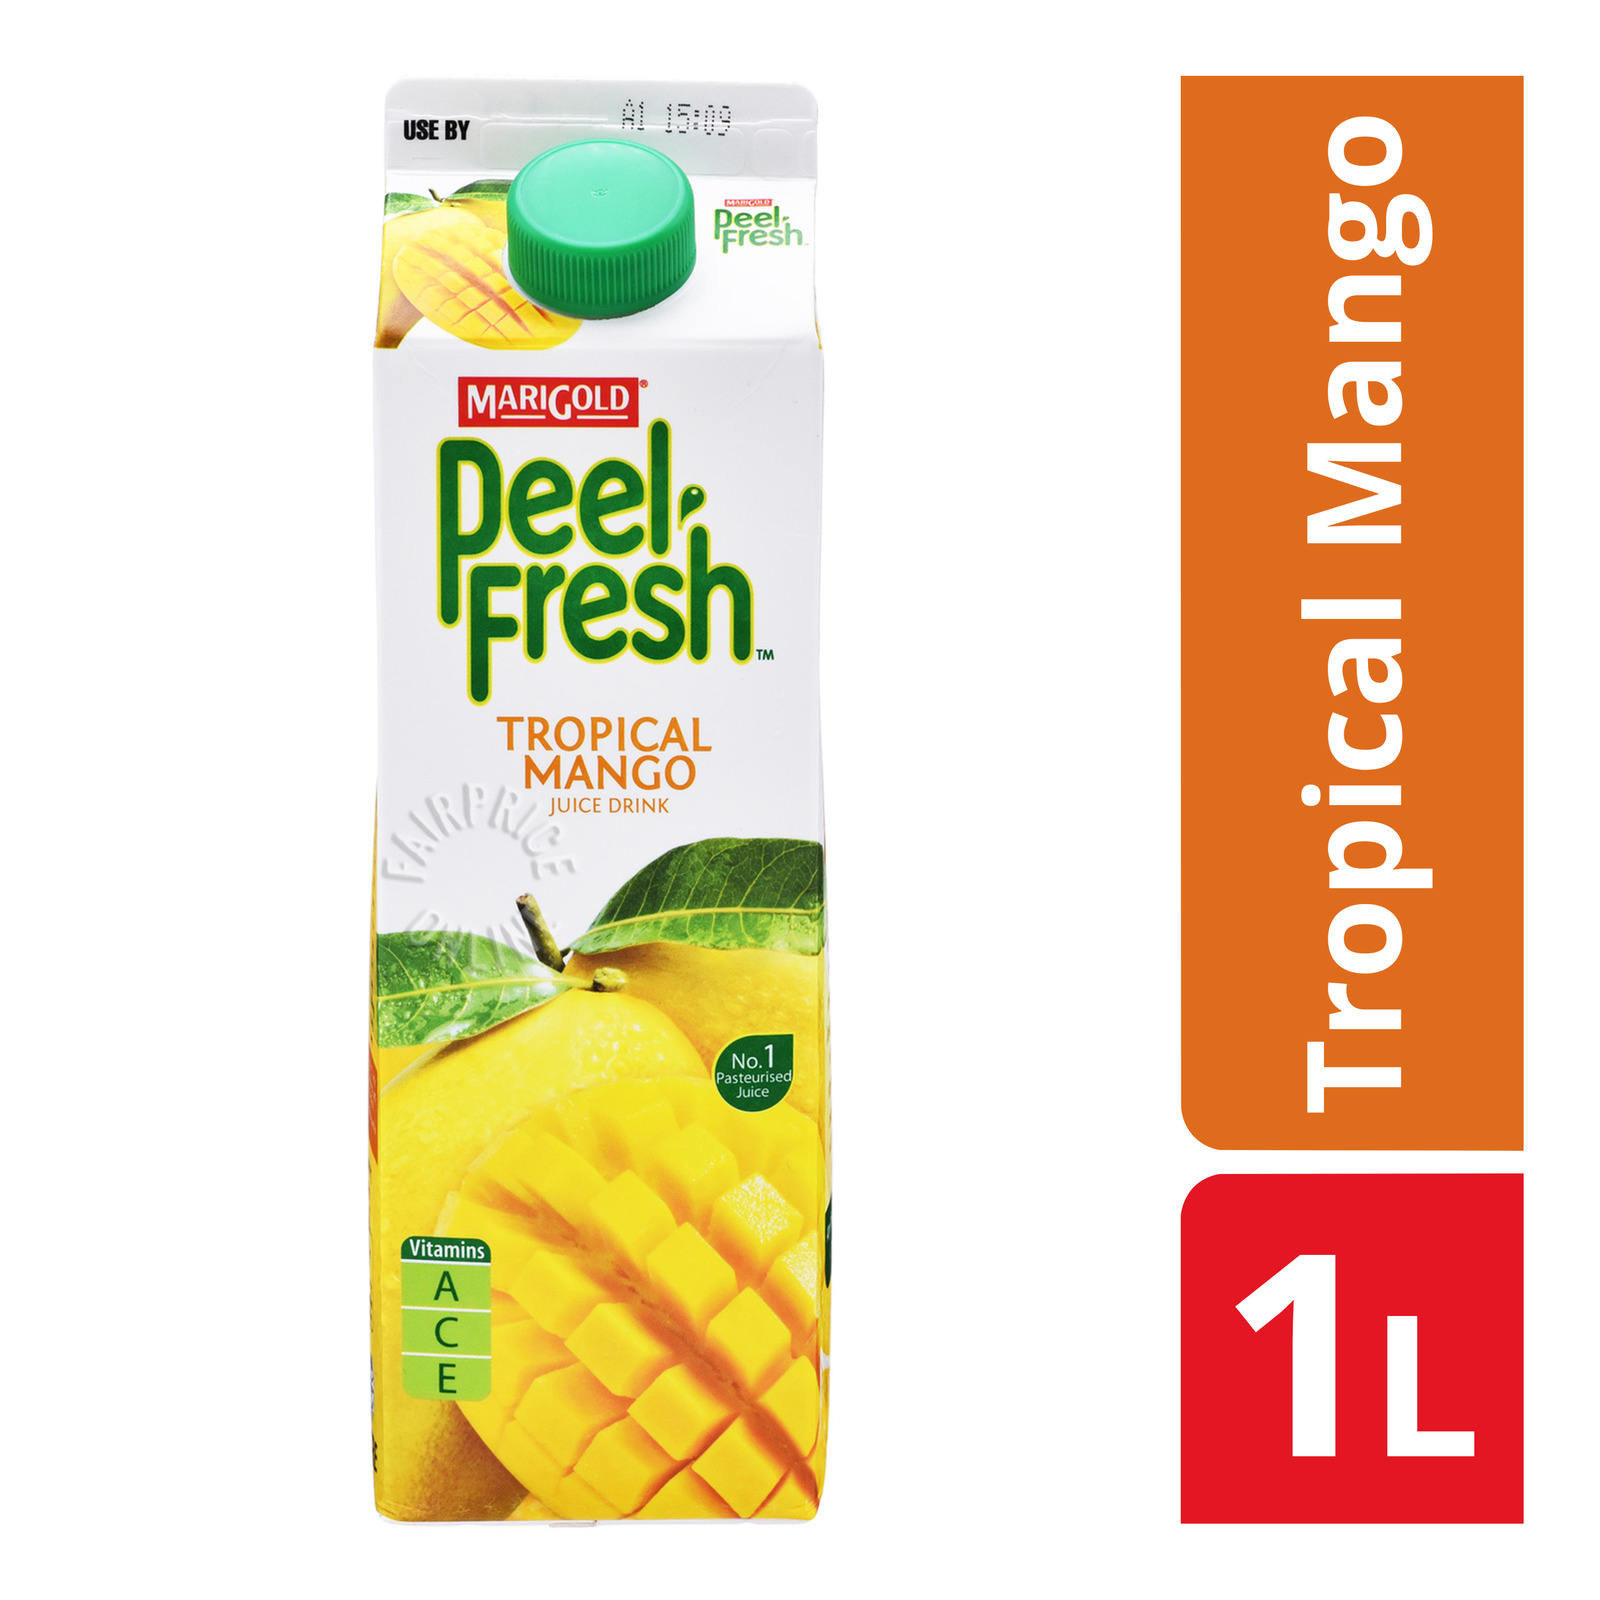 MARIGOLD Peel Fresh Juice Drink - Tropical Mango